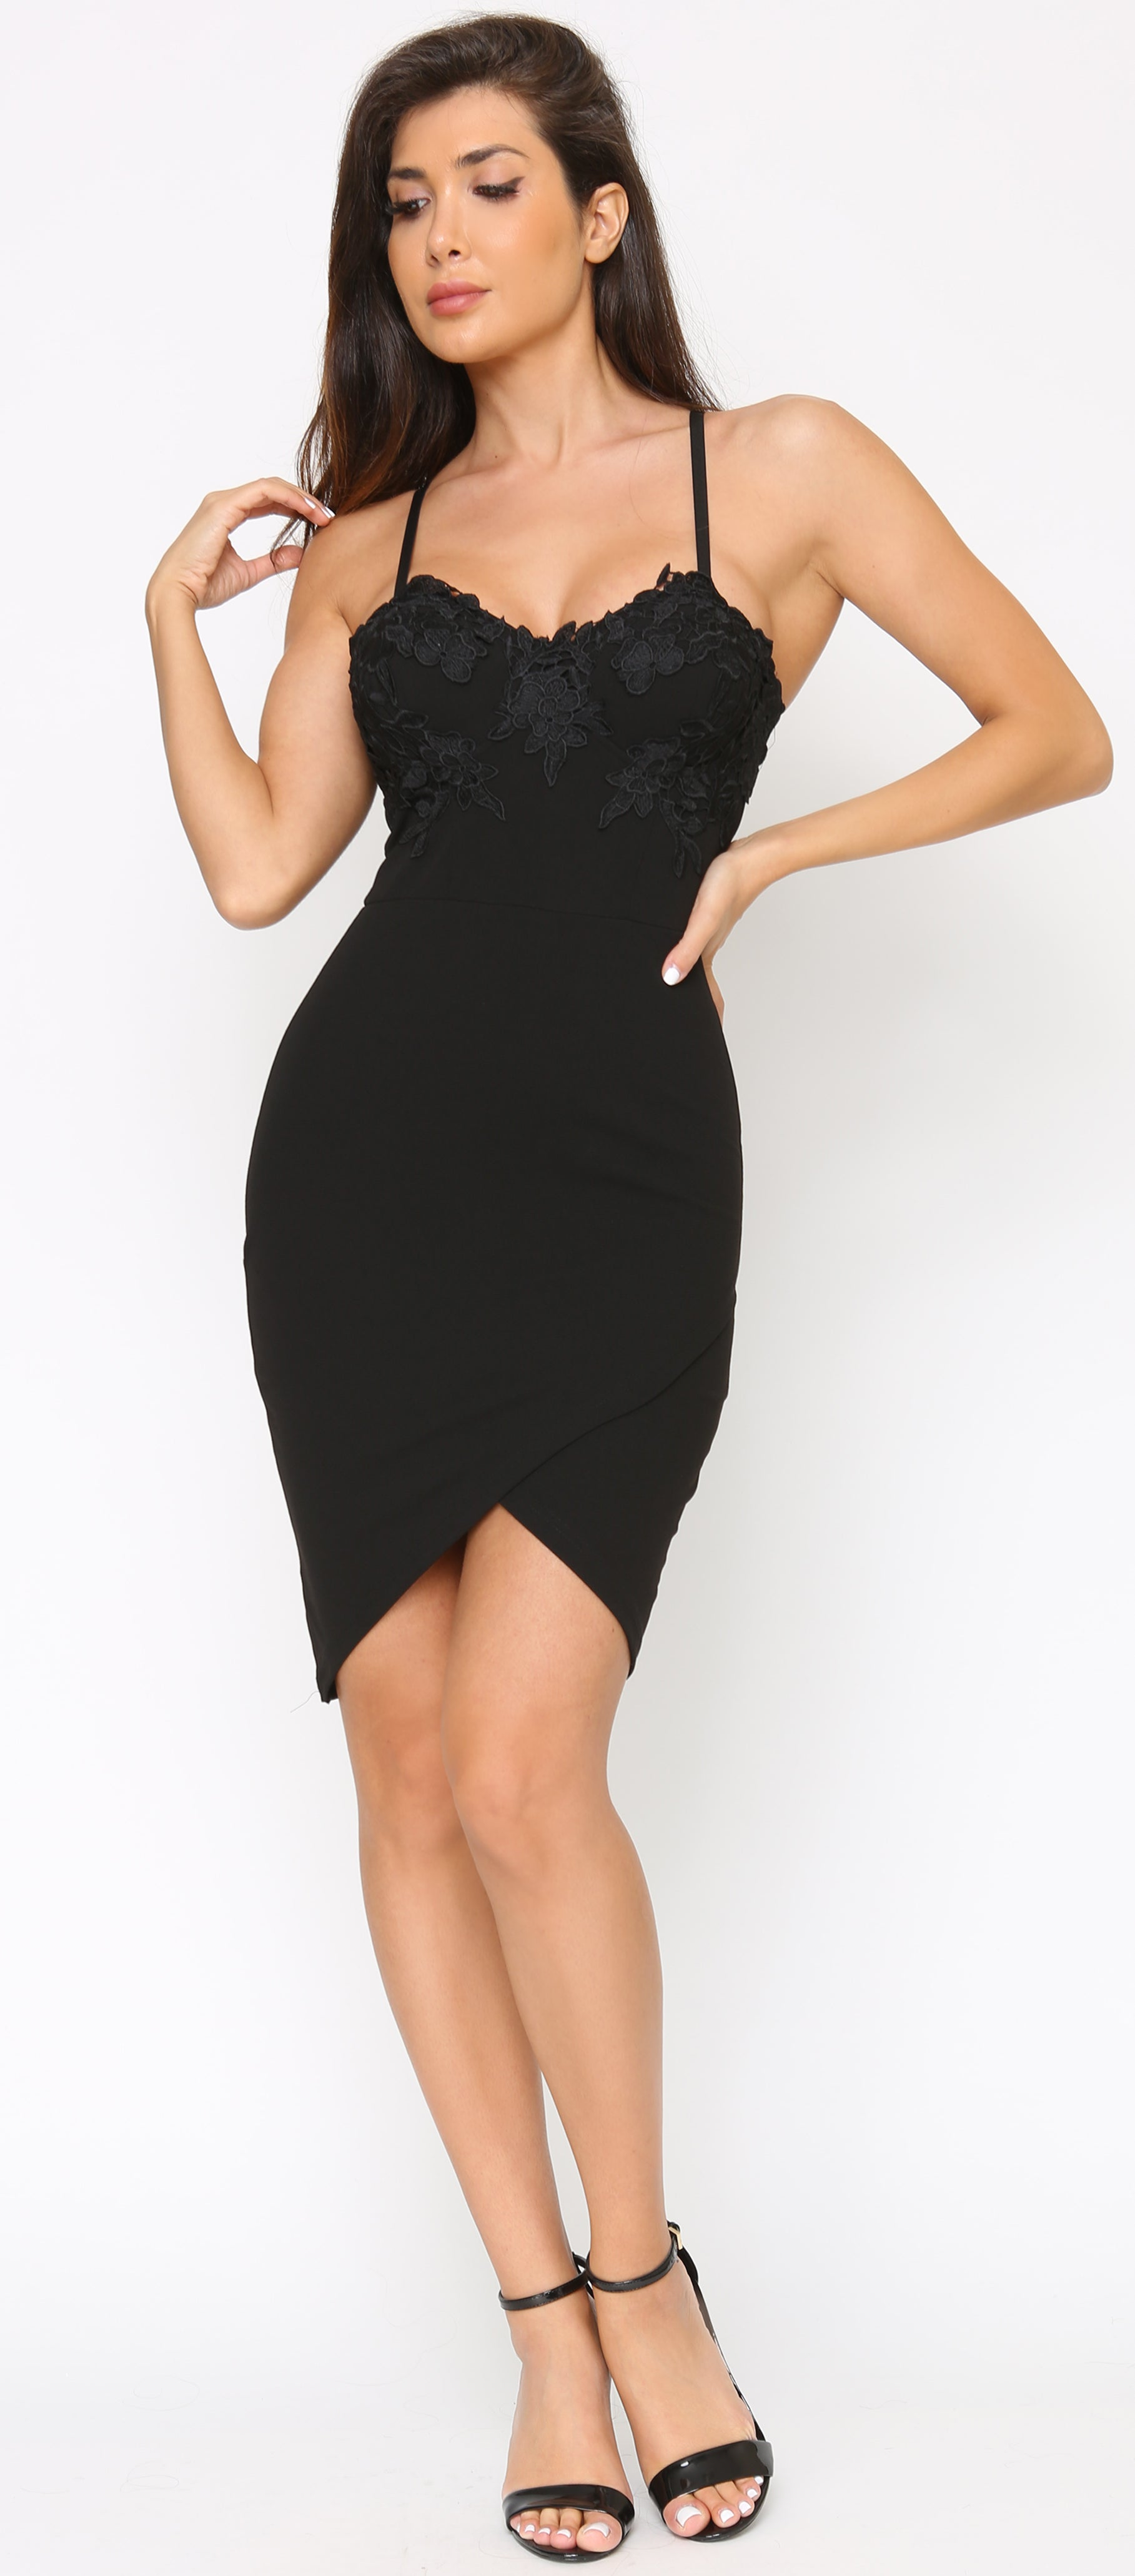 Avana Black Lace Bustier Asymmetrical Dress - Emprada